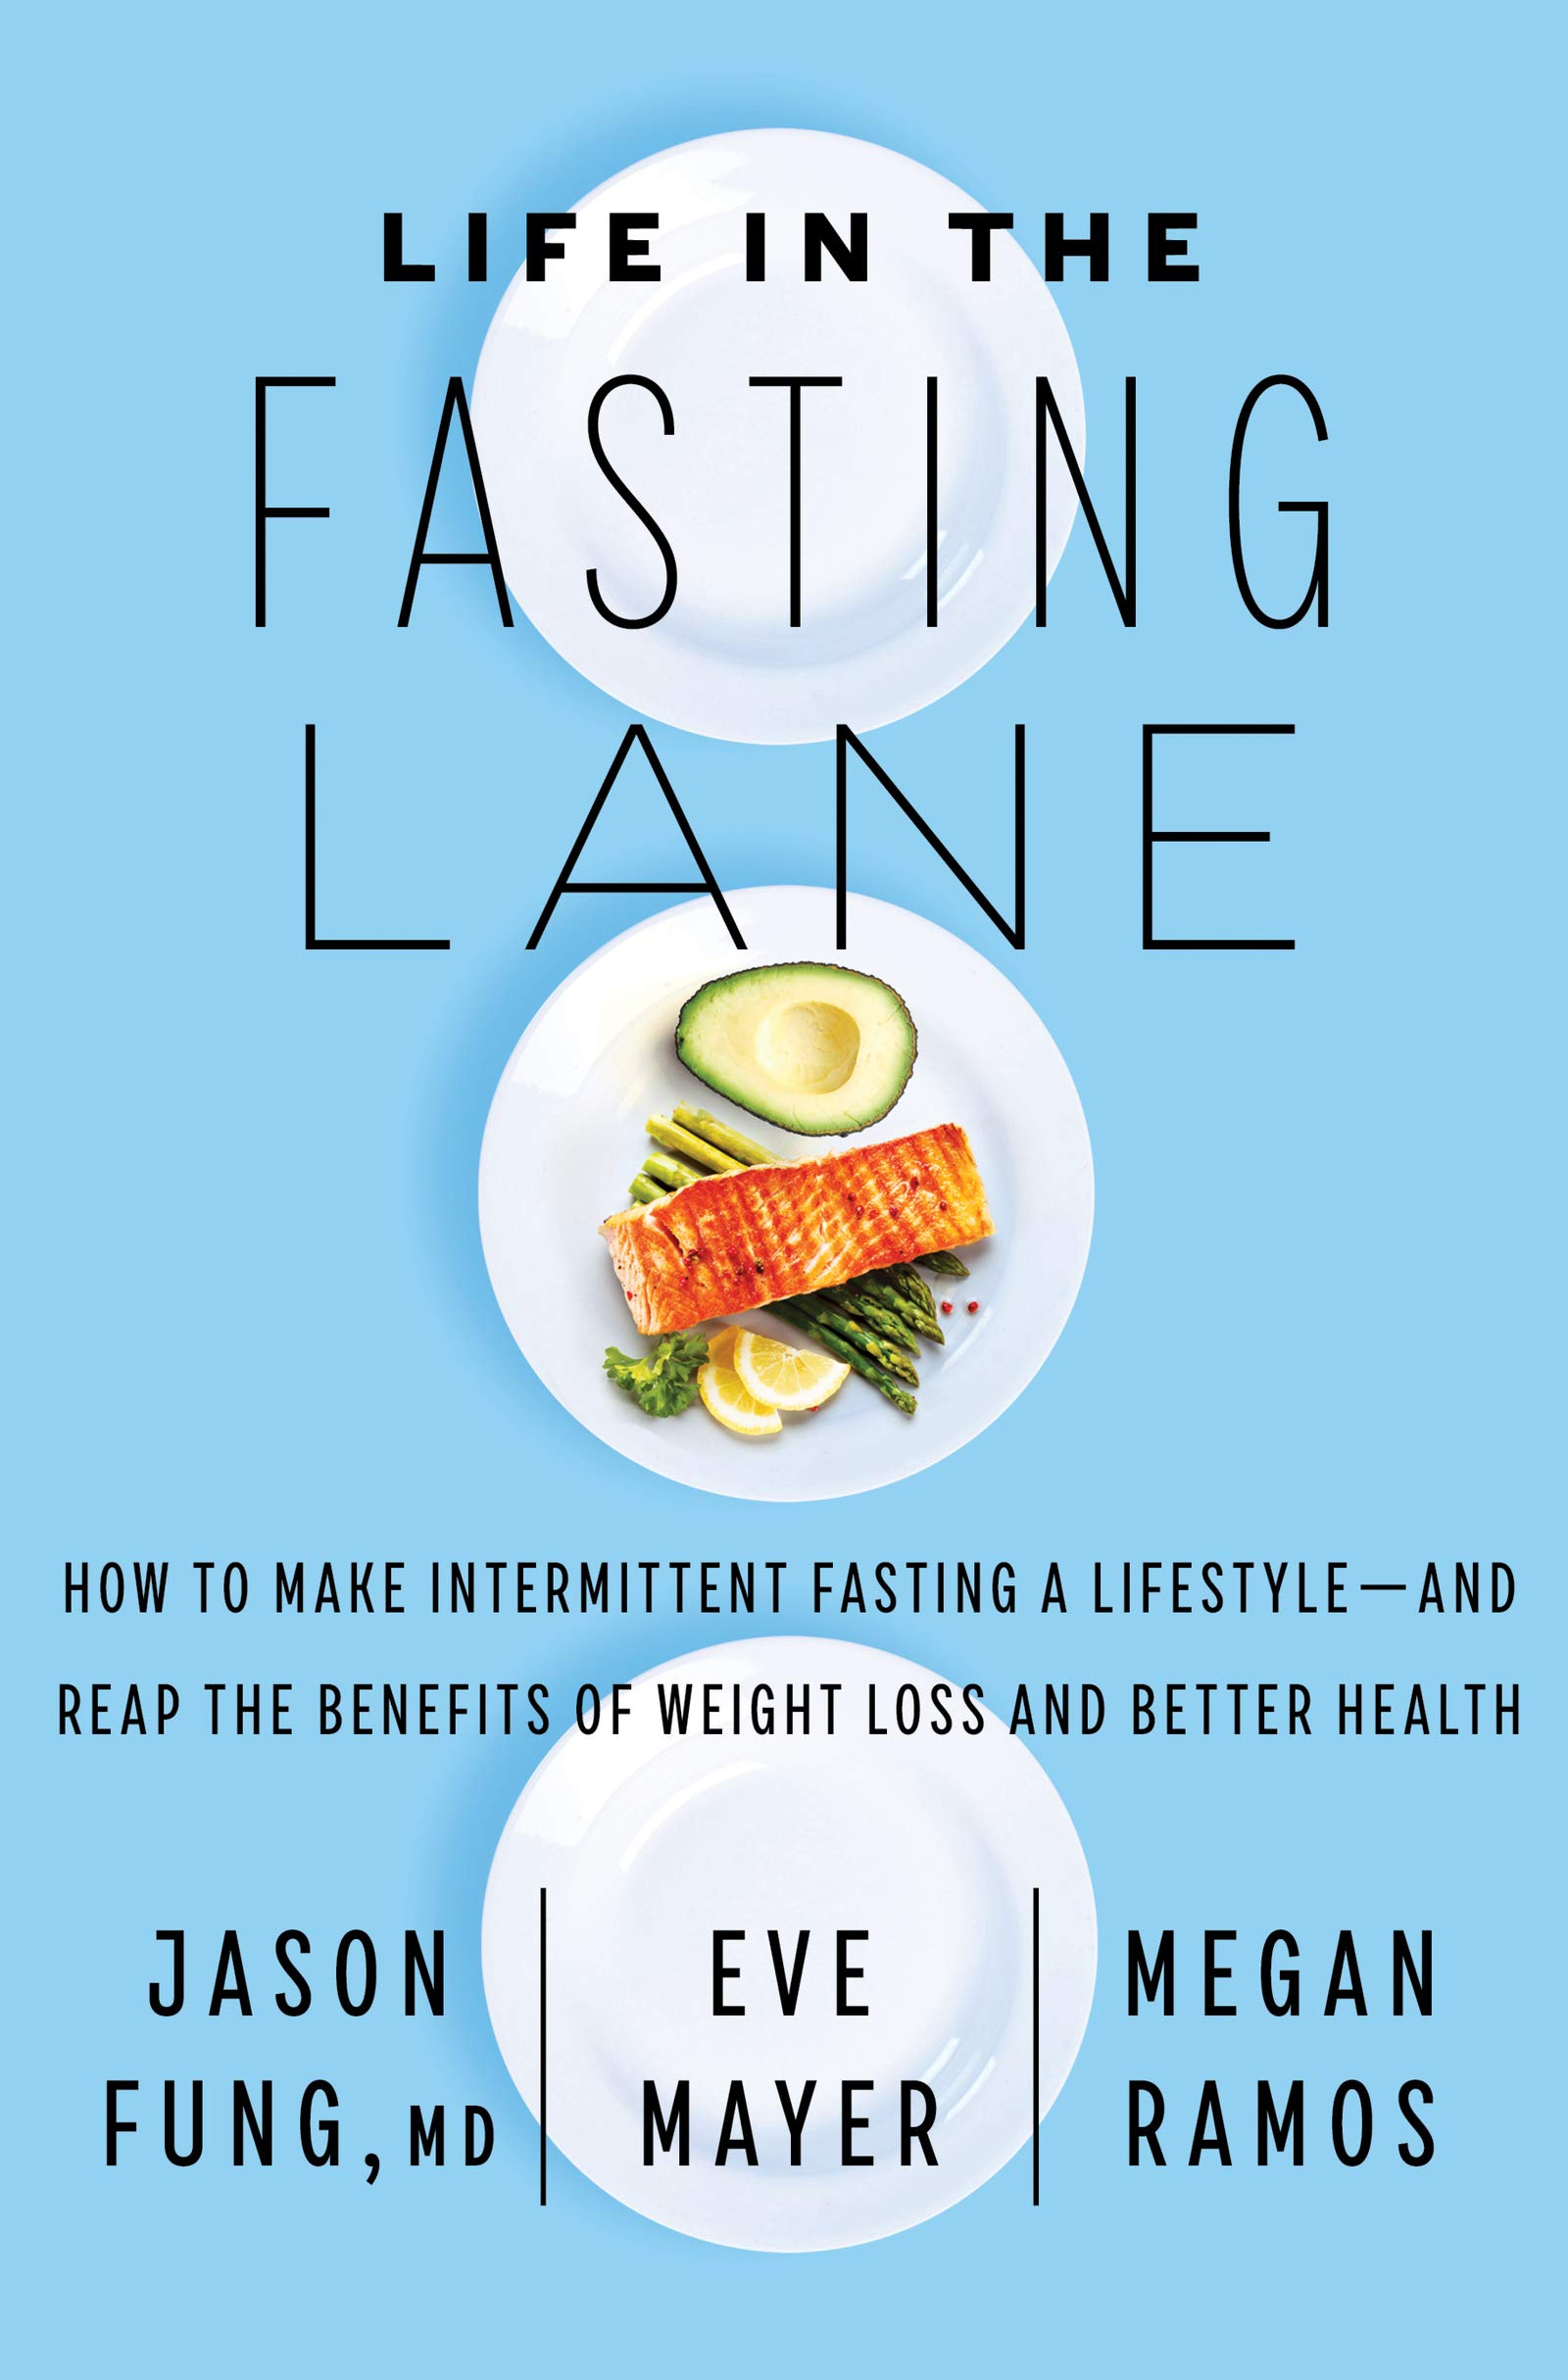 Life in the Fasting Lane: How to Make Intermittent Fasting a Lifestyle_and Reap the Benefits of Weight Loss and Better Health